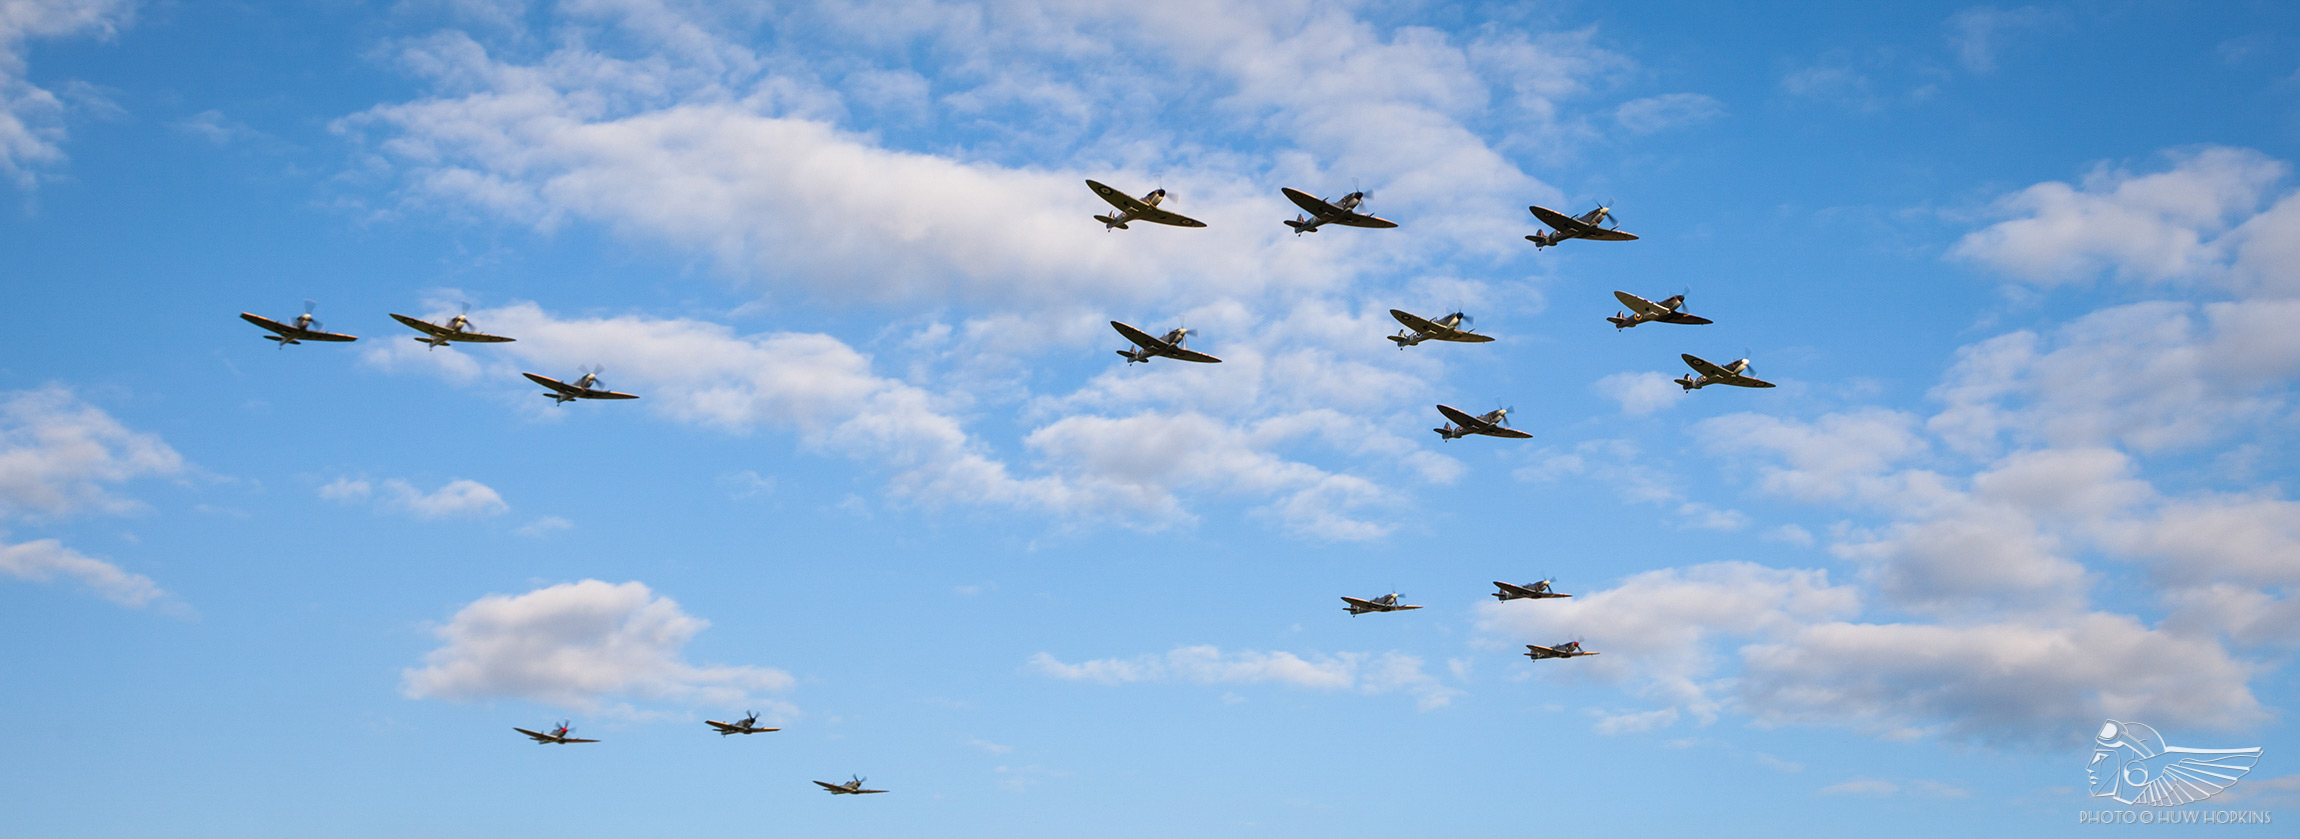 Orchestrating Duxford's 17 Spitfire Salute